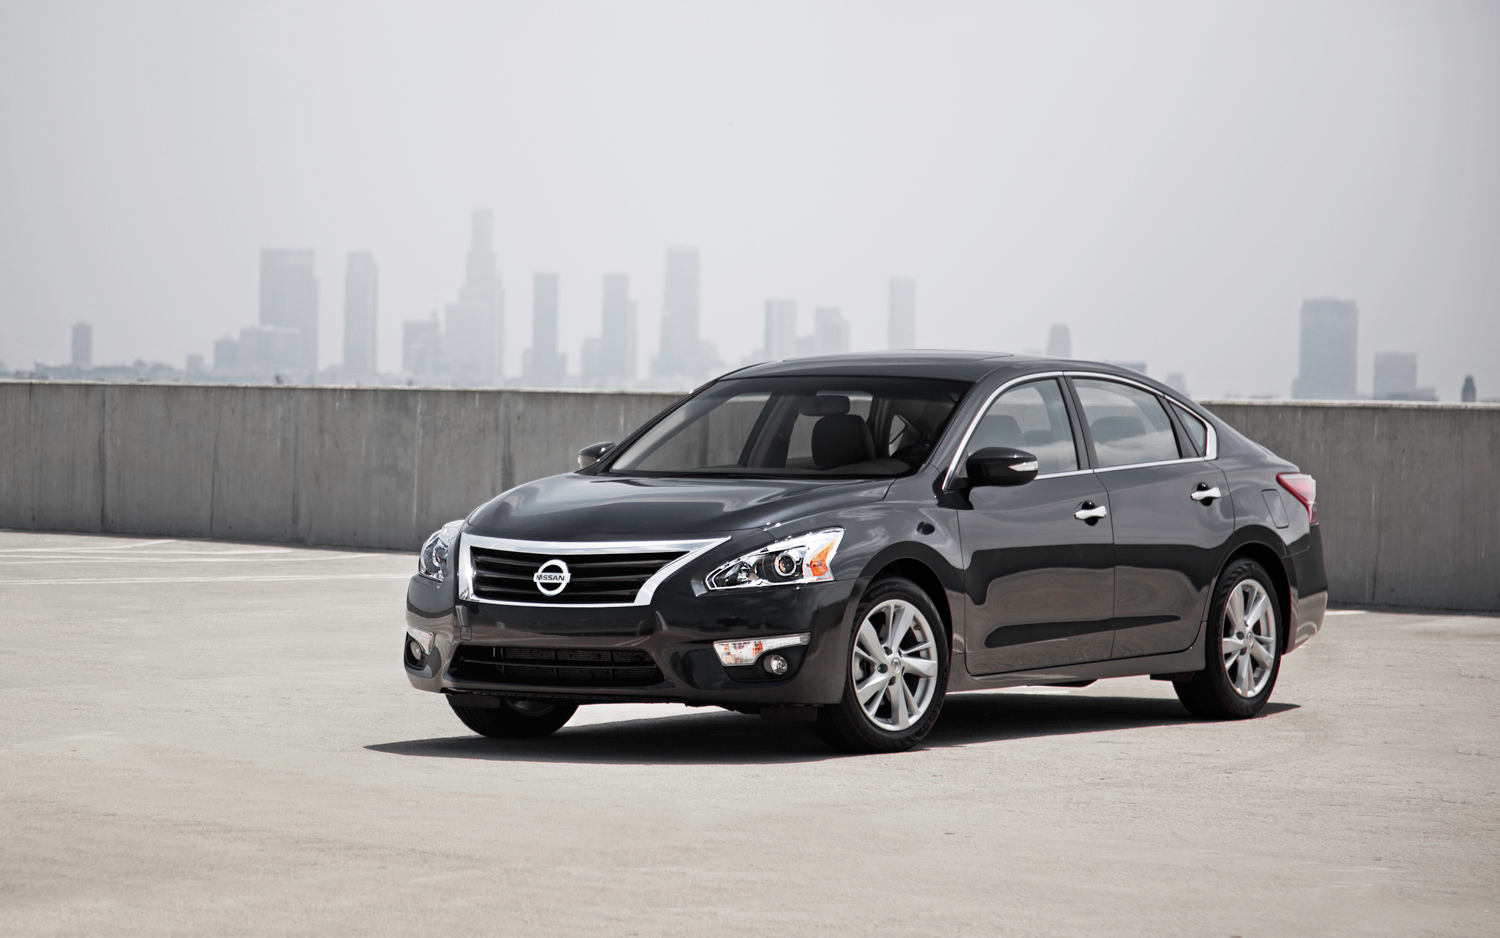 2019 Nissan Altima photo - 2